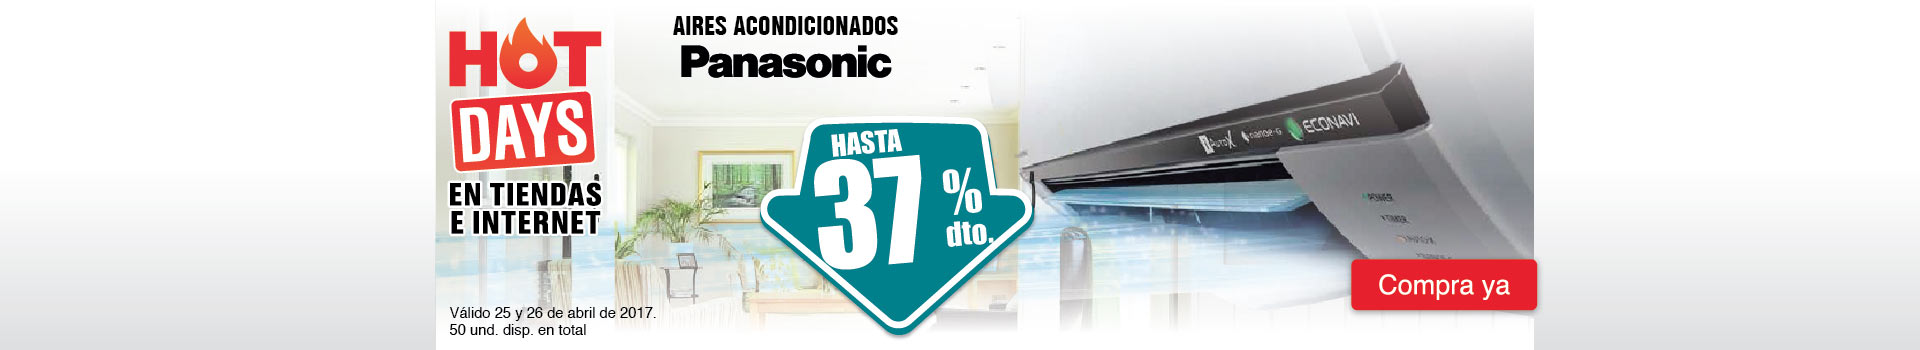 HIPER - abril 25 - HOT SALE - Hasta 37% dto en aires acondicionados PANASONIC